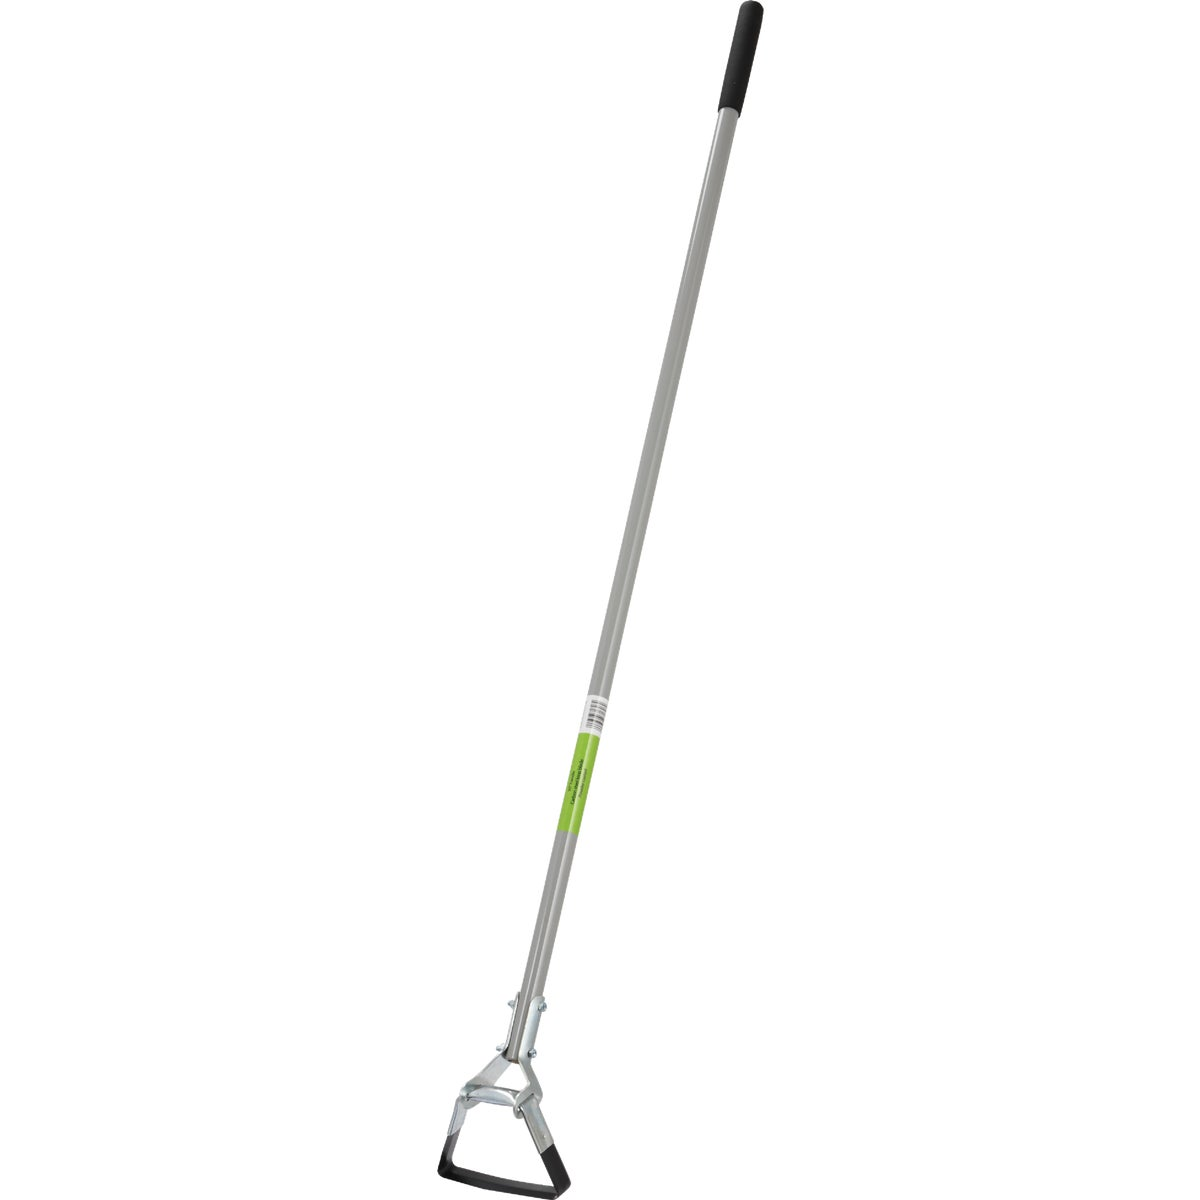 F/G HANDLE GARDEN HOE - LF-1251 by Do it Best